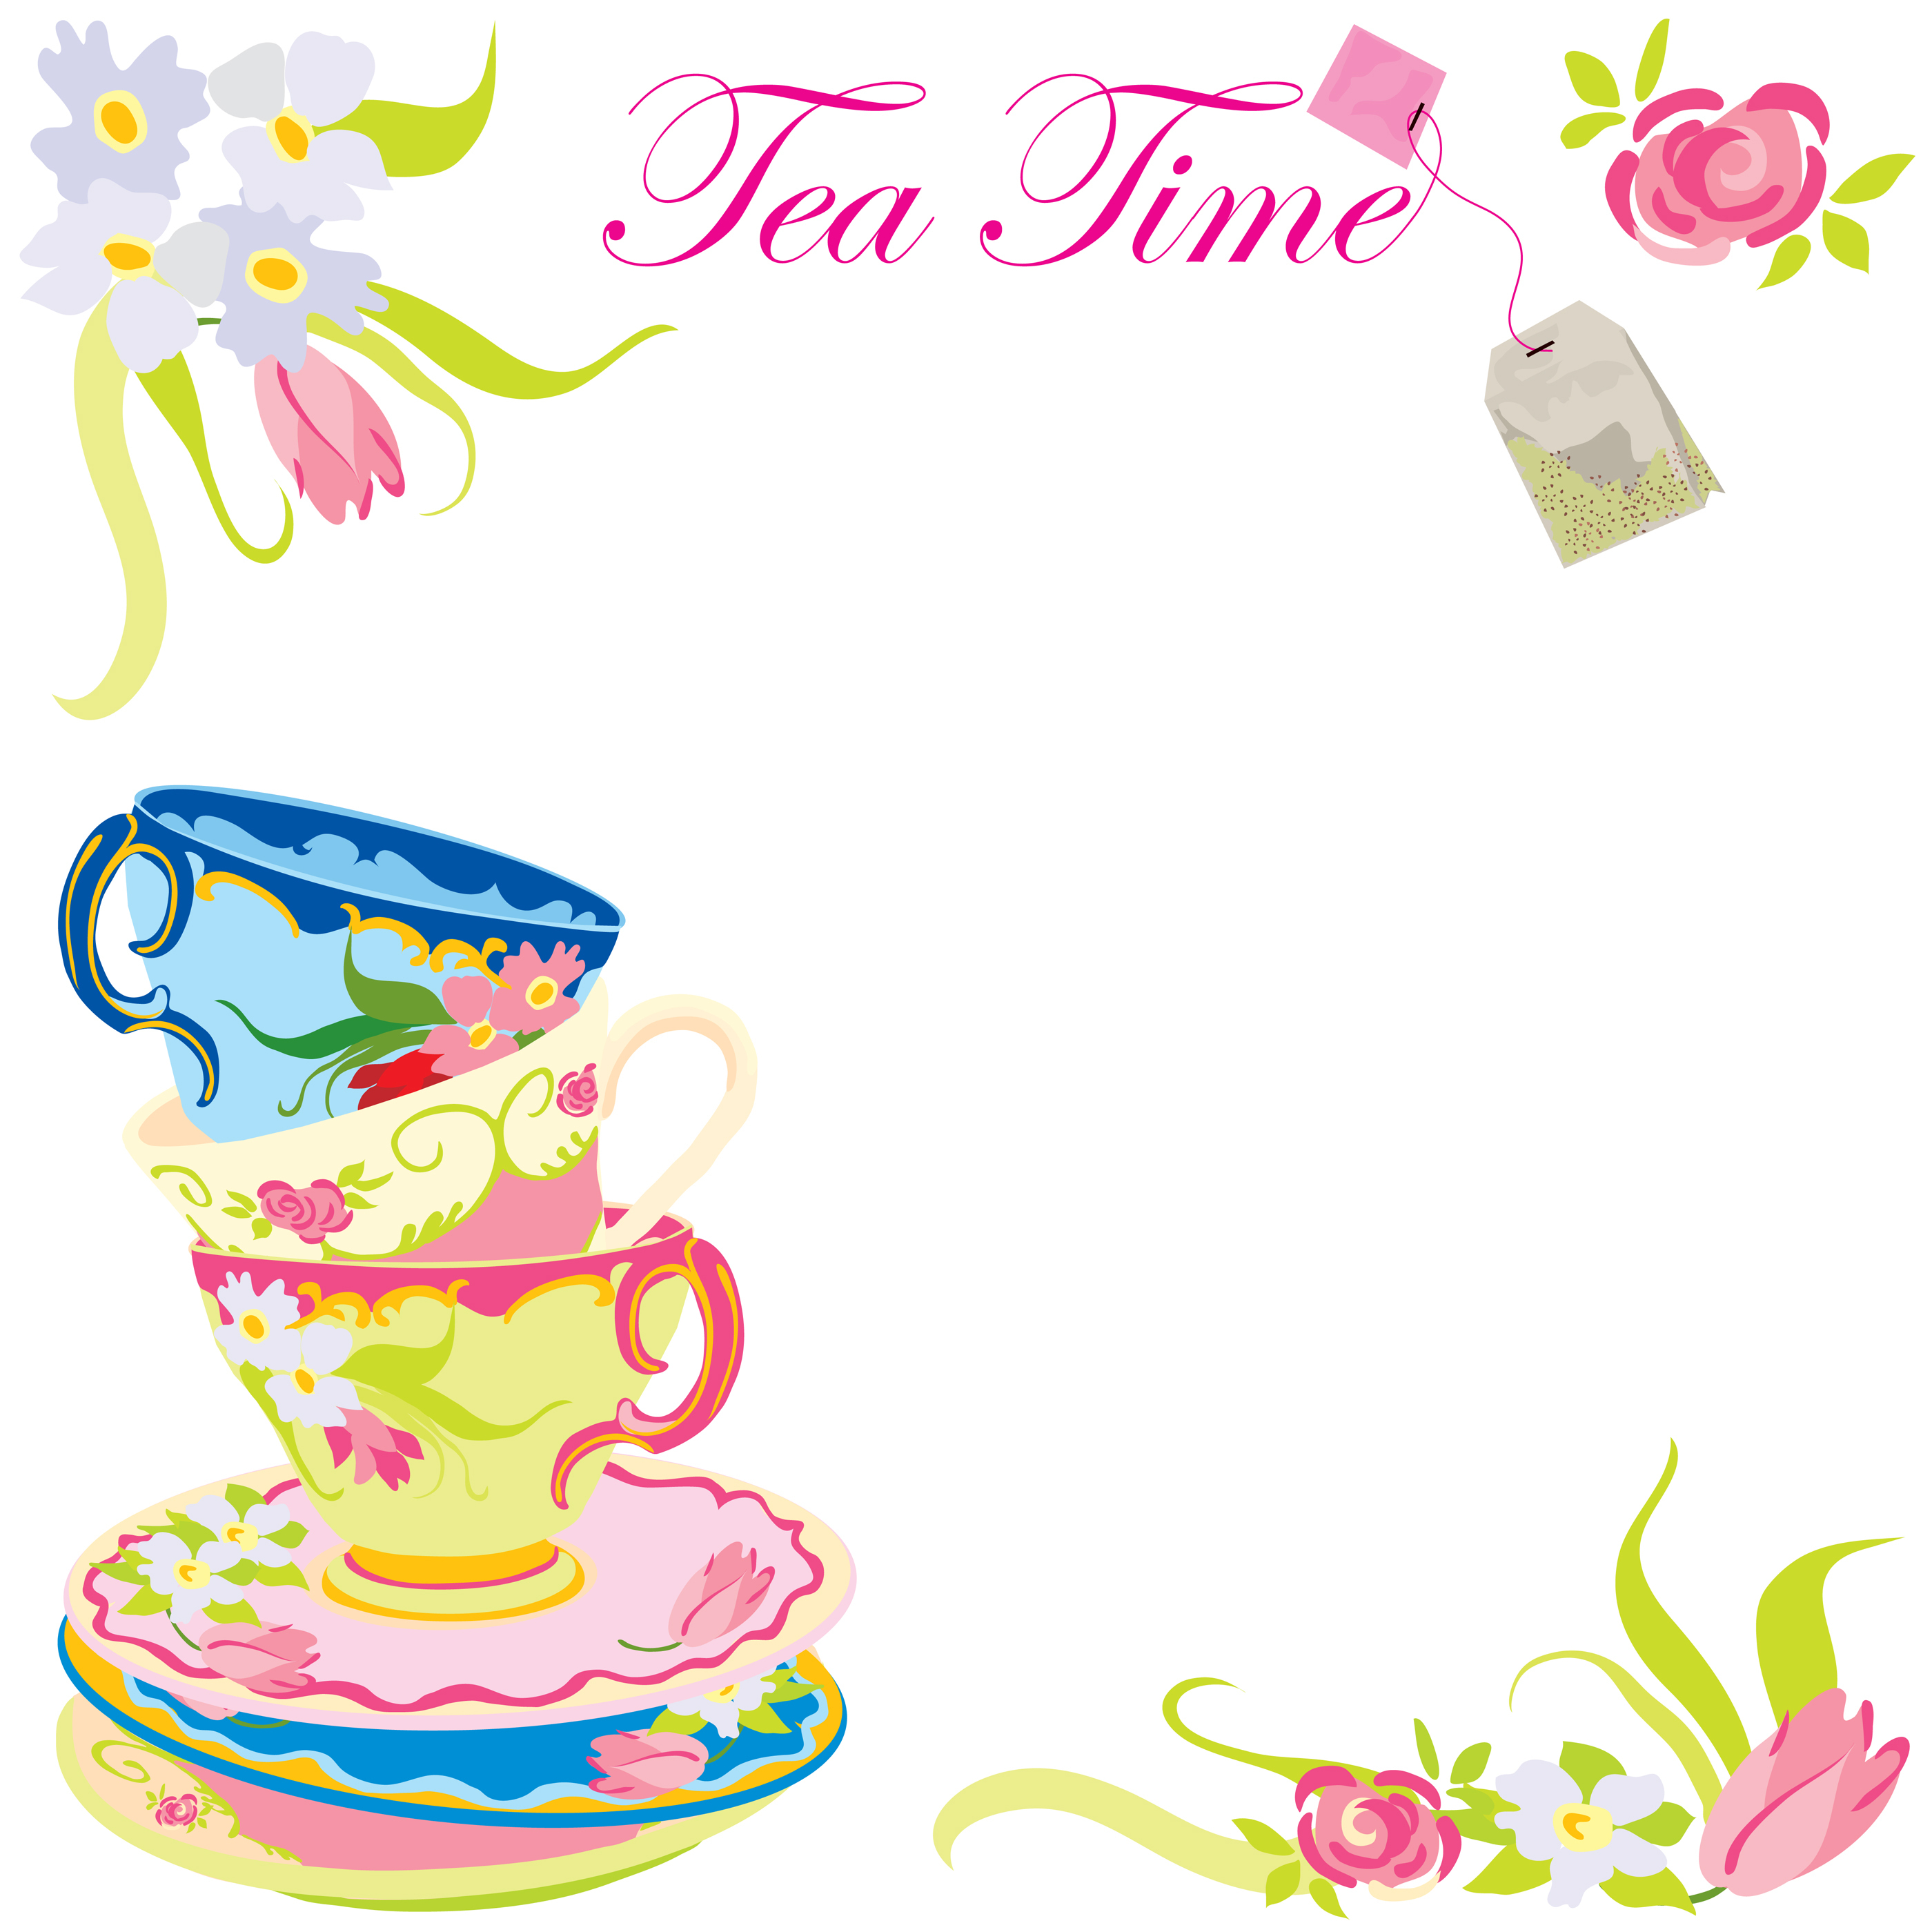 Tea party pictures clipart vector download Free Tea Party Cliparts, Download Free Clip Art, Free Clip ... vector download